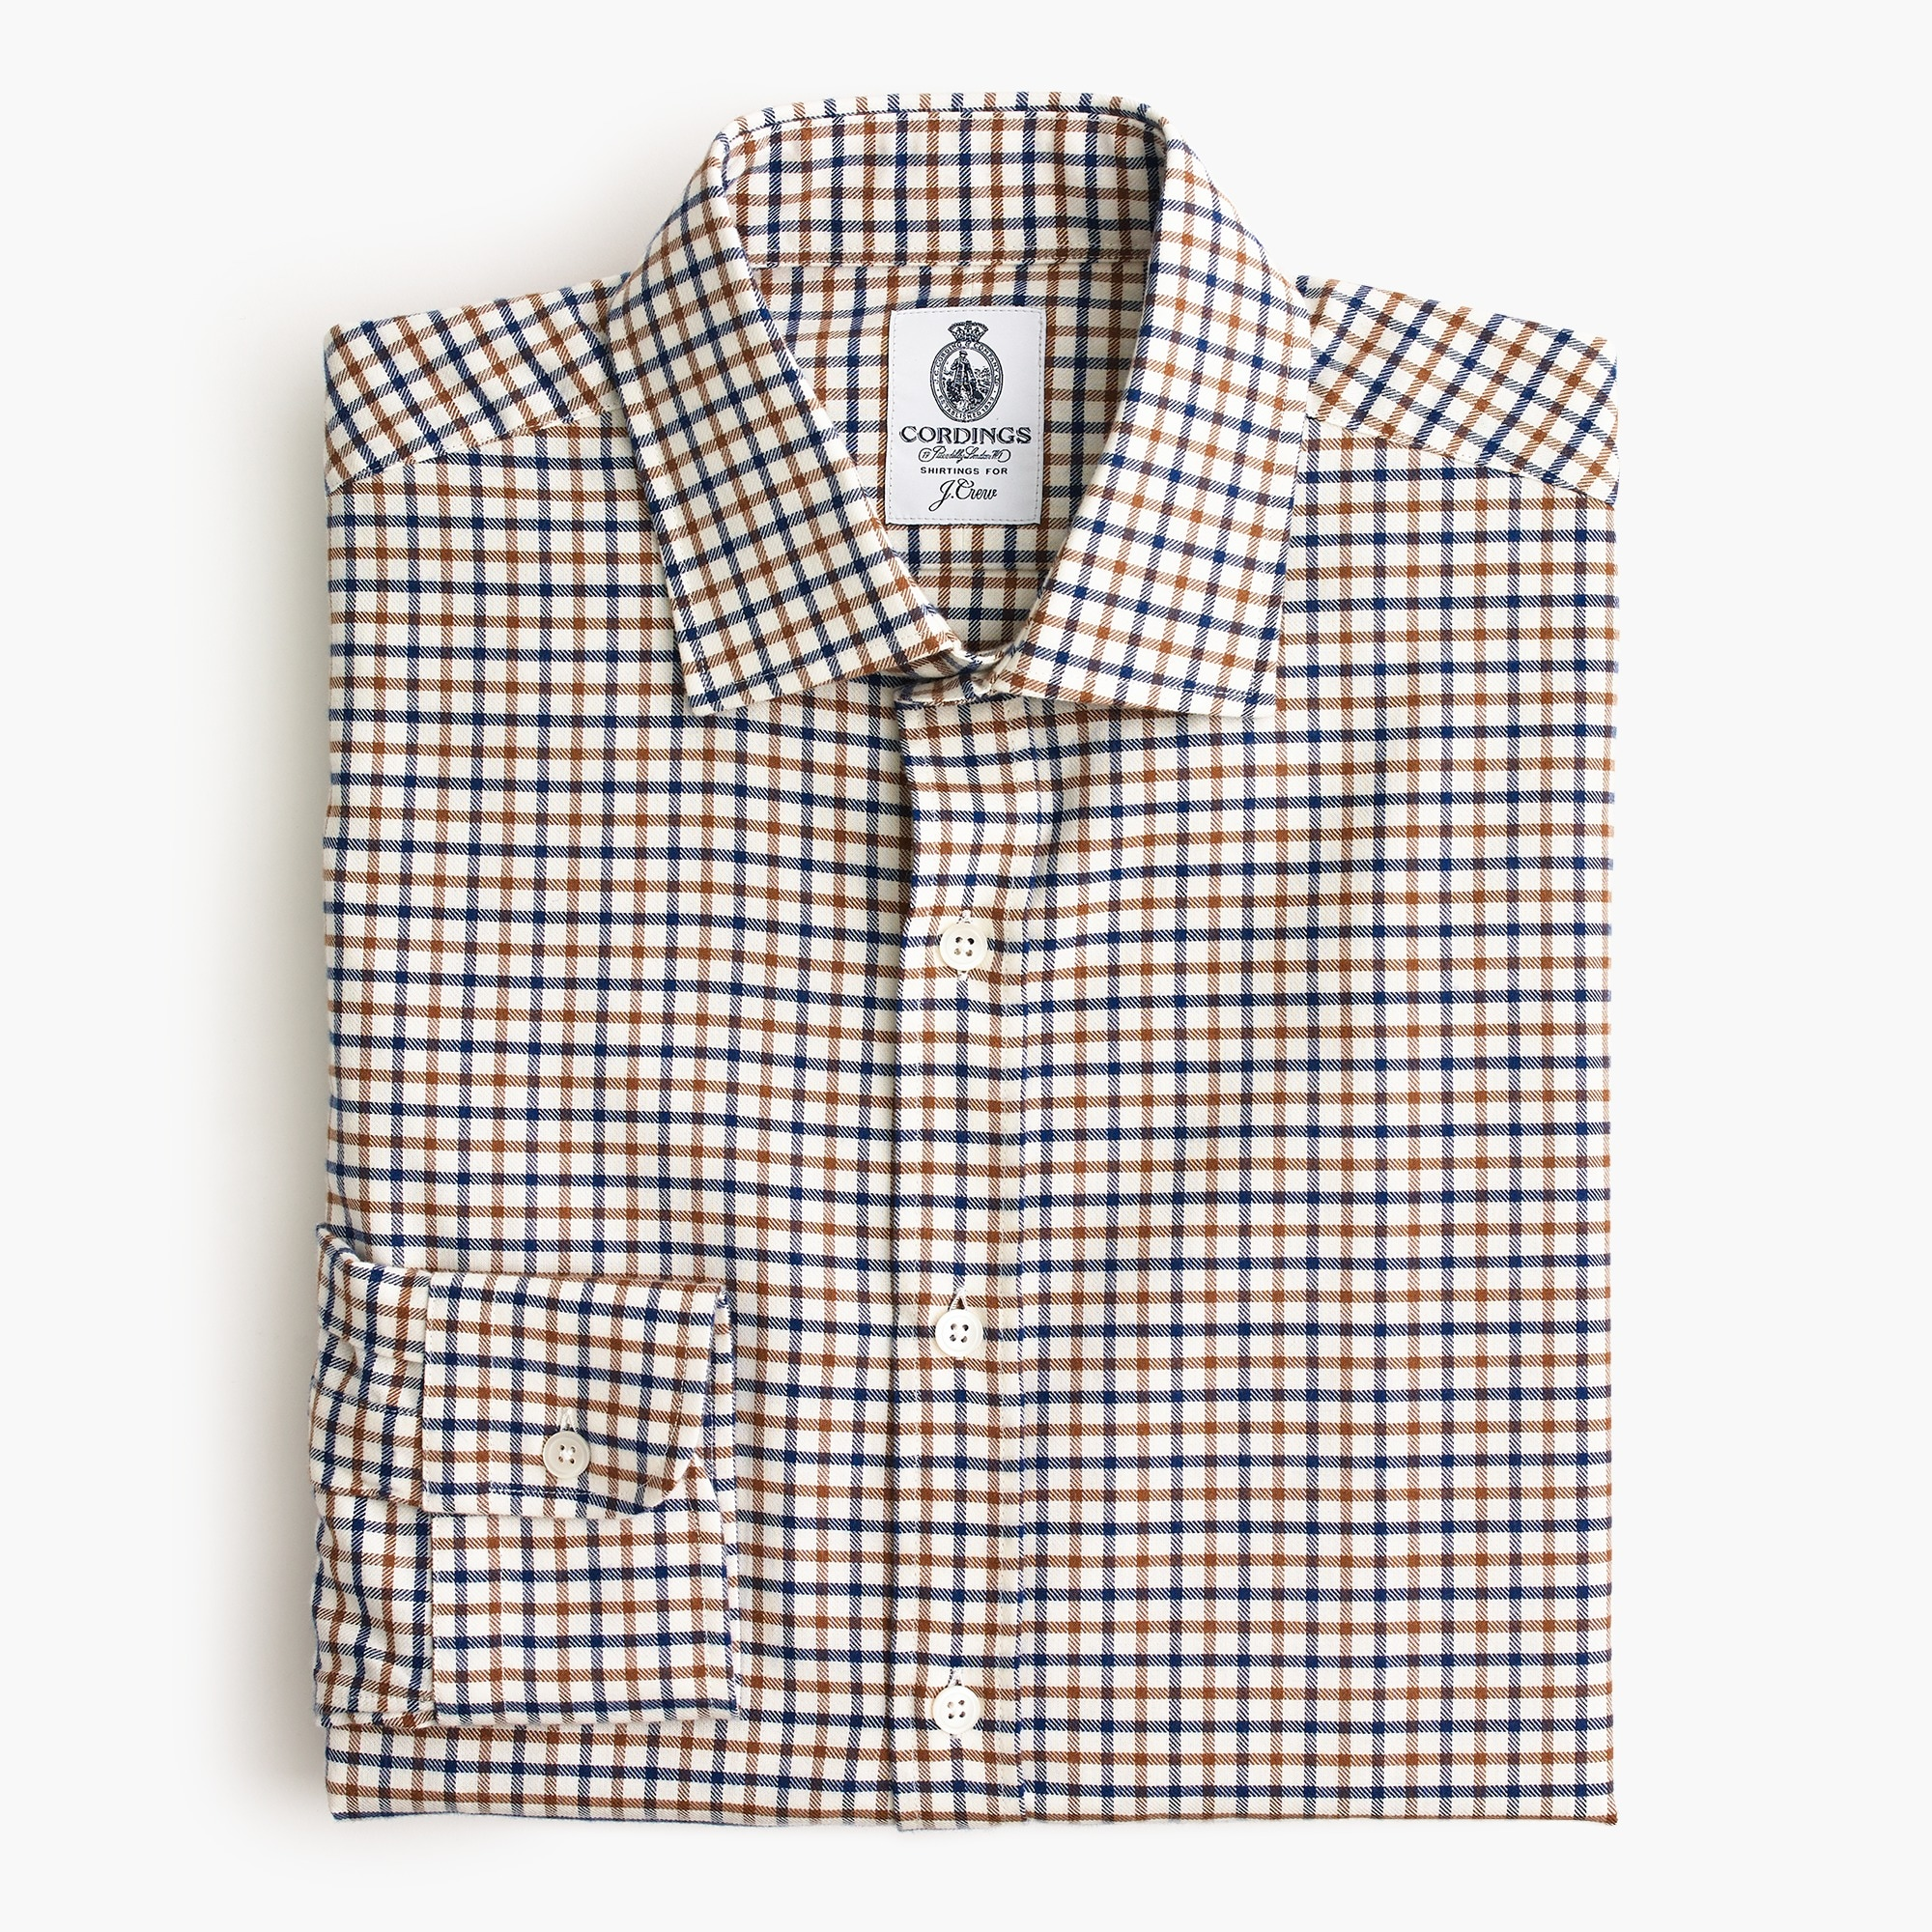 men's cordings™ for j.crew shirt in rye tattersall - men's shirts